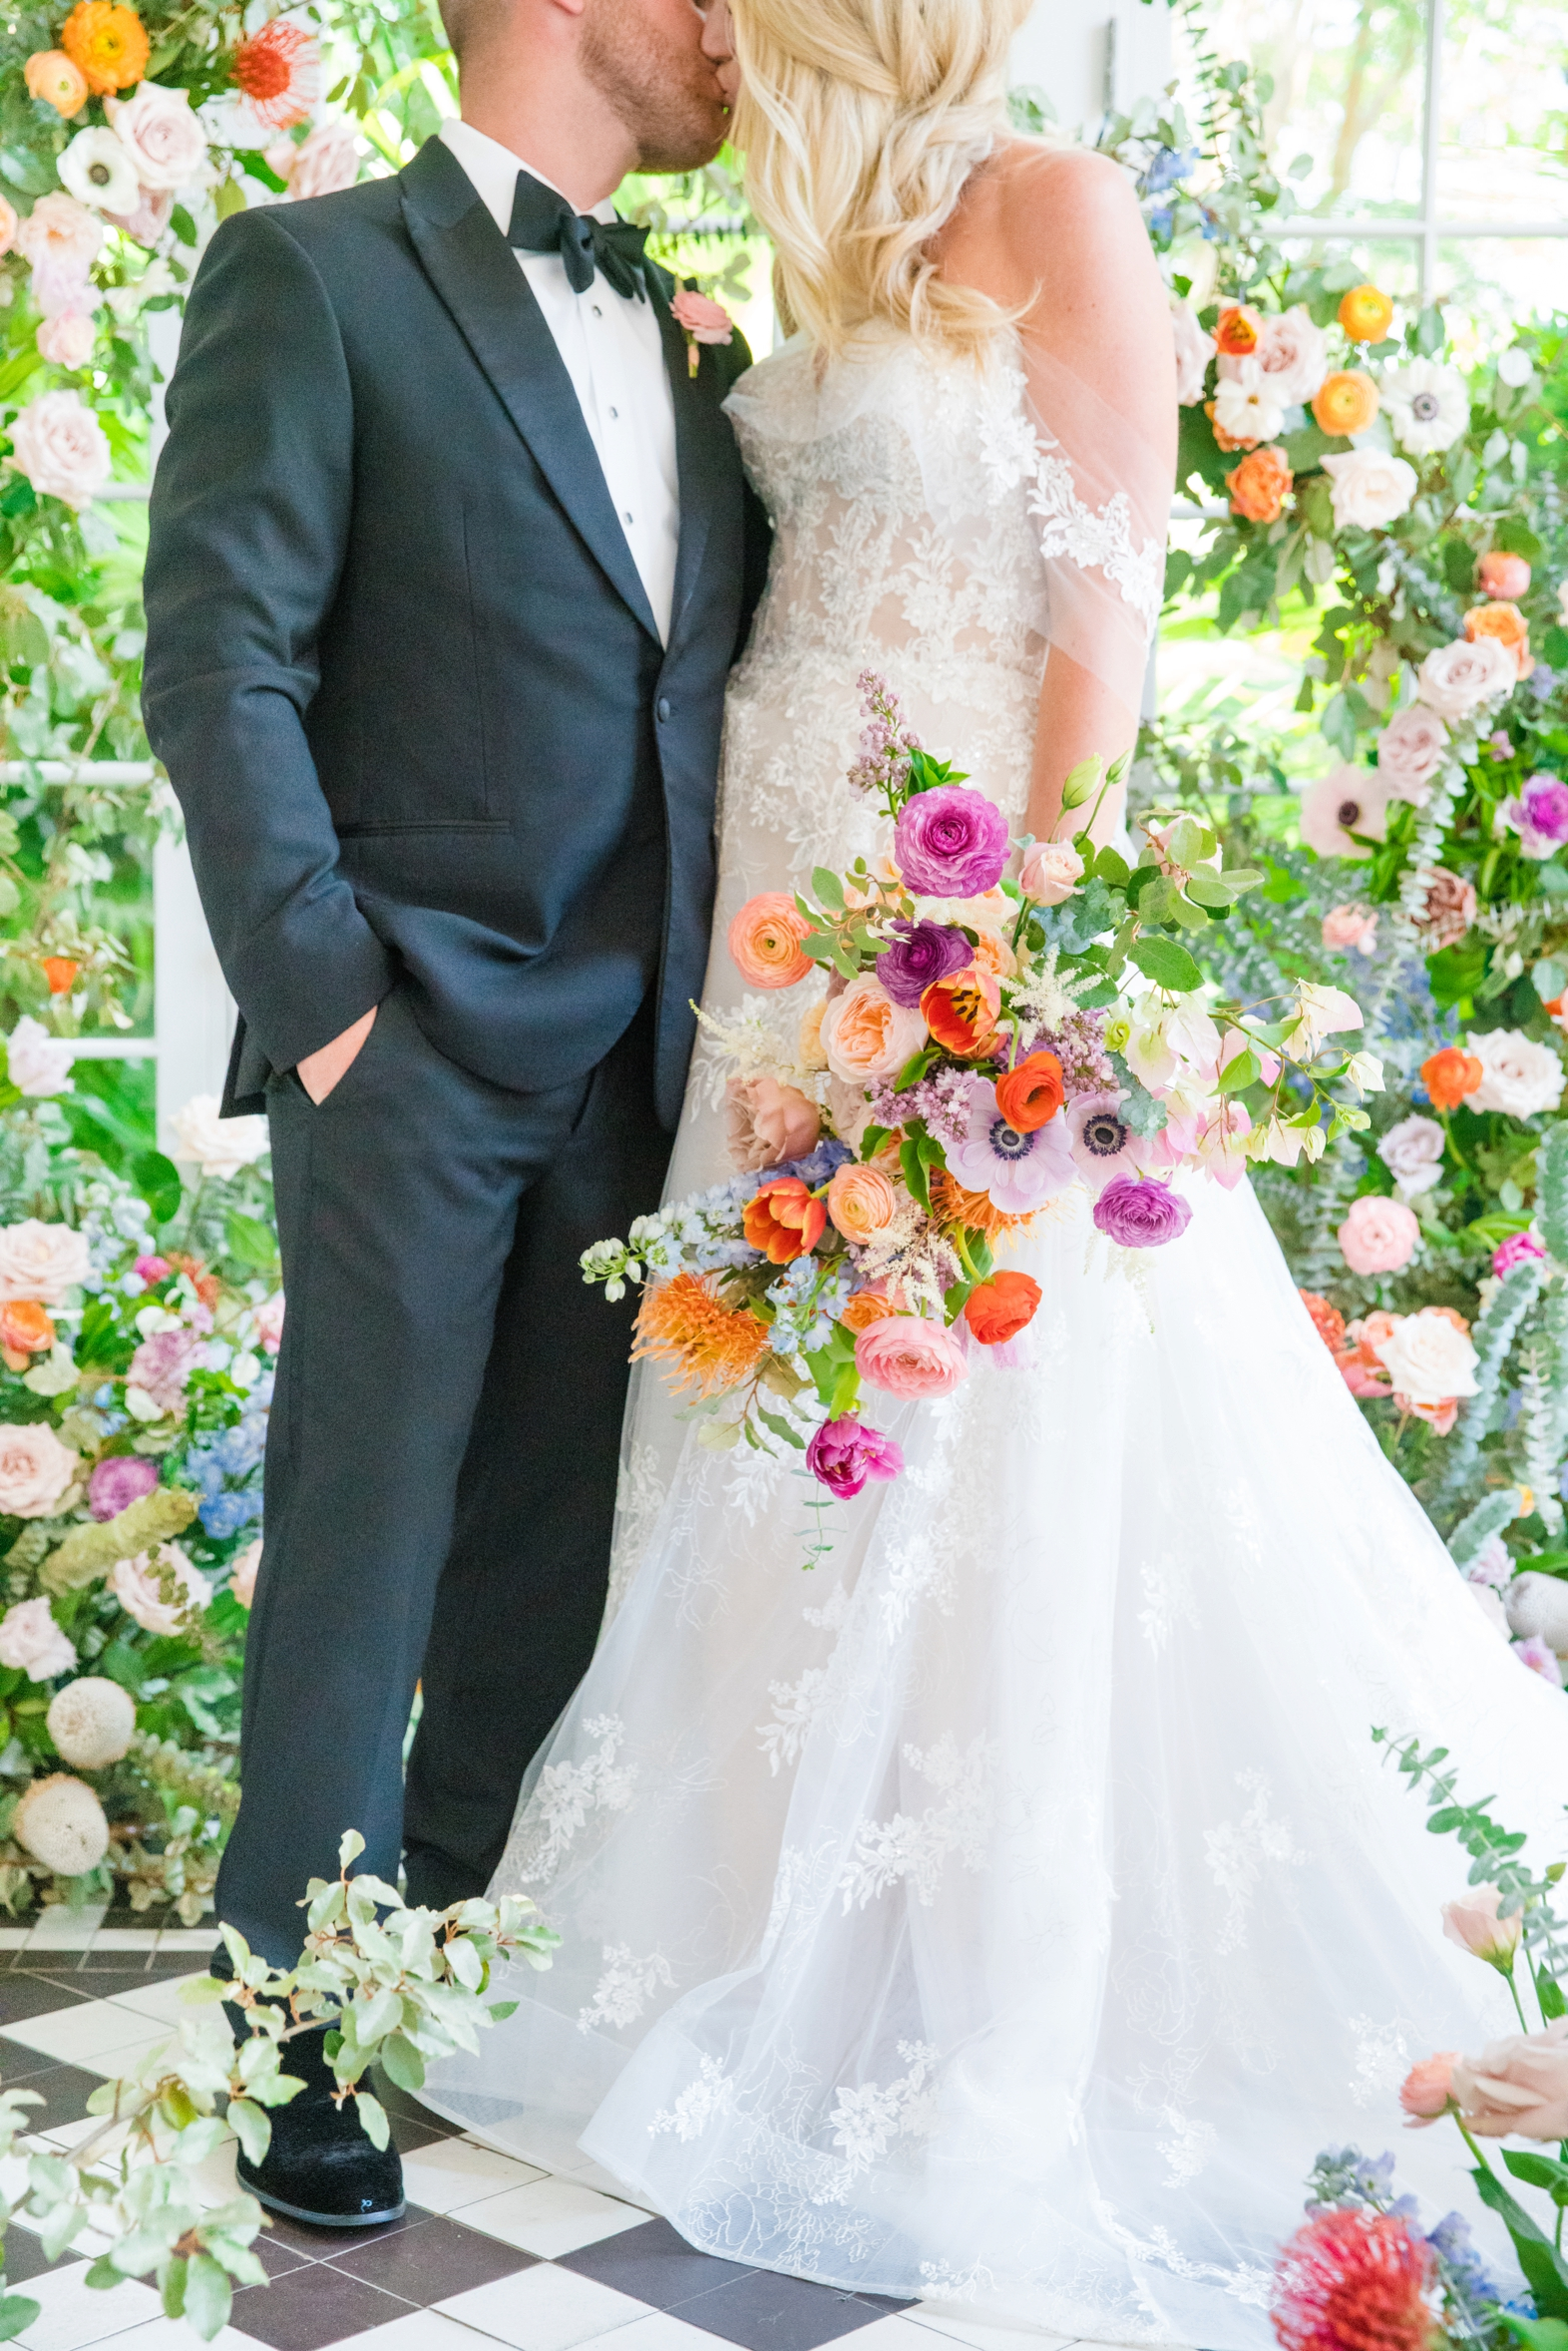 Bride and groom styled shoot with spring flowers - photo by Dana Cubbage Weddings